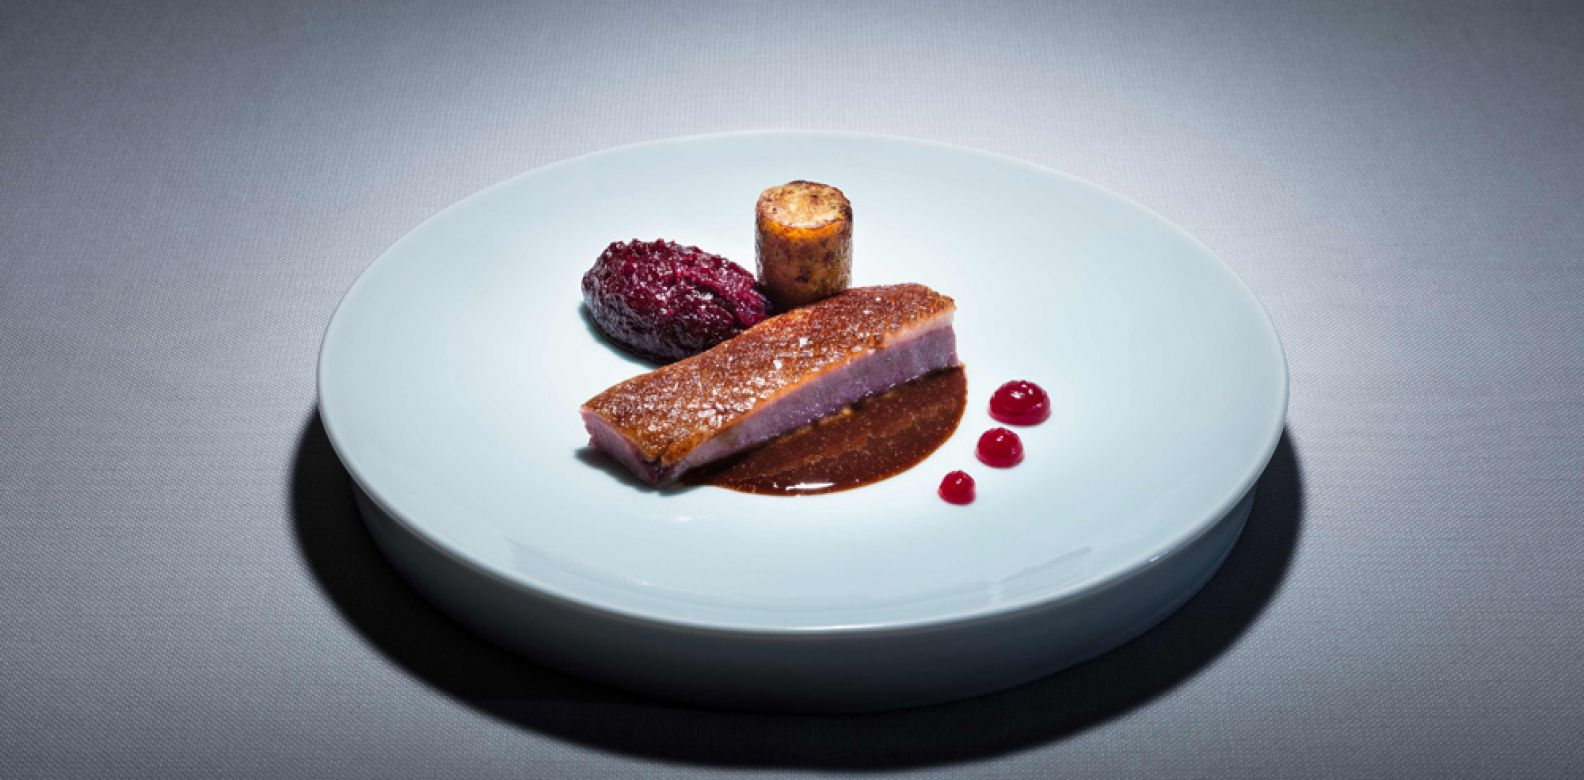 Foie gras ice cream, blackberries, birch syrup and Danish rye (Photo: Signe Birck)